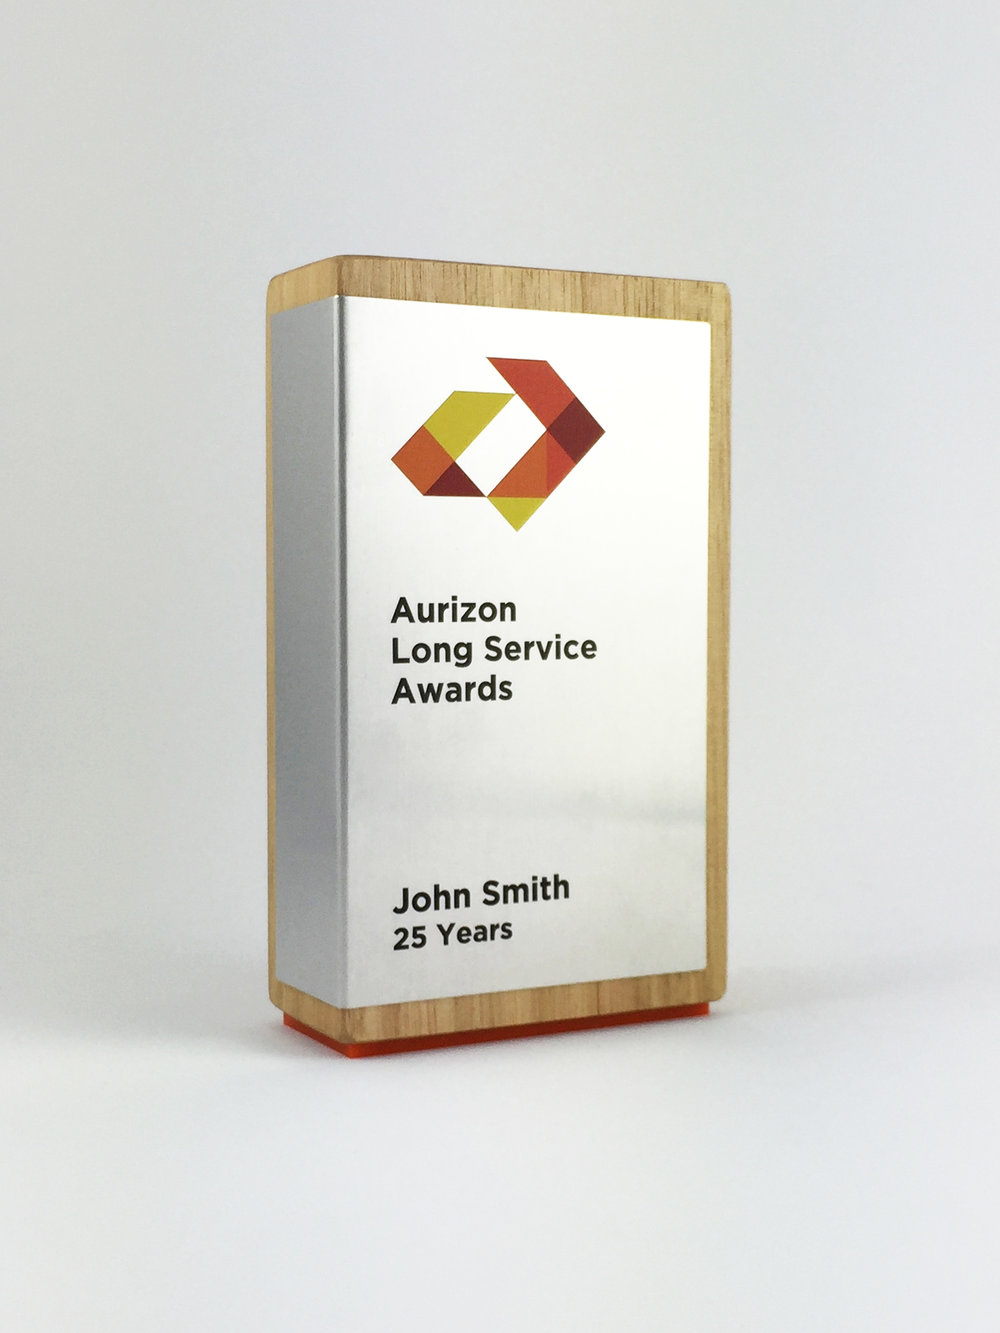 aurizon-recognition-awards-timber-cube-metal-trophy-03.jpg